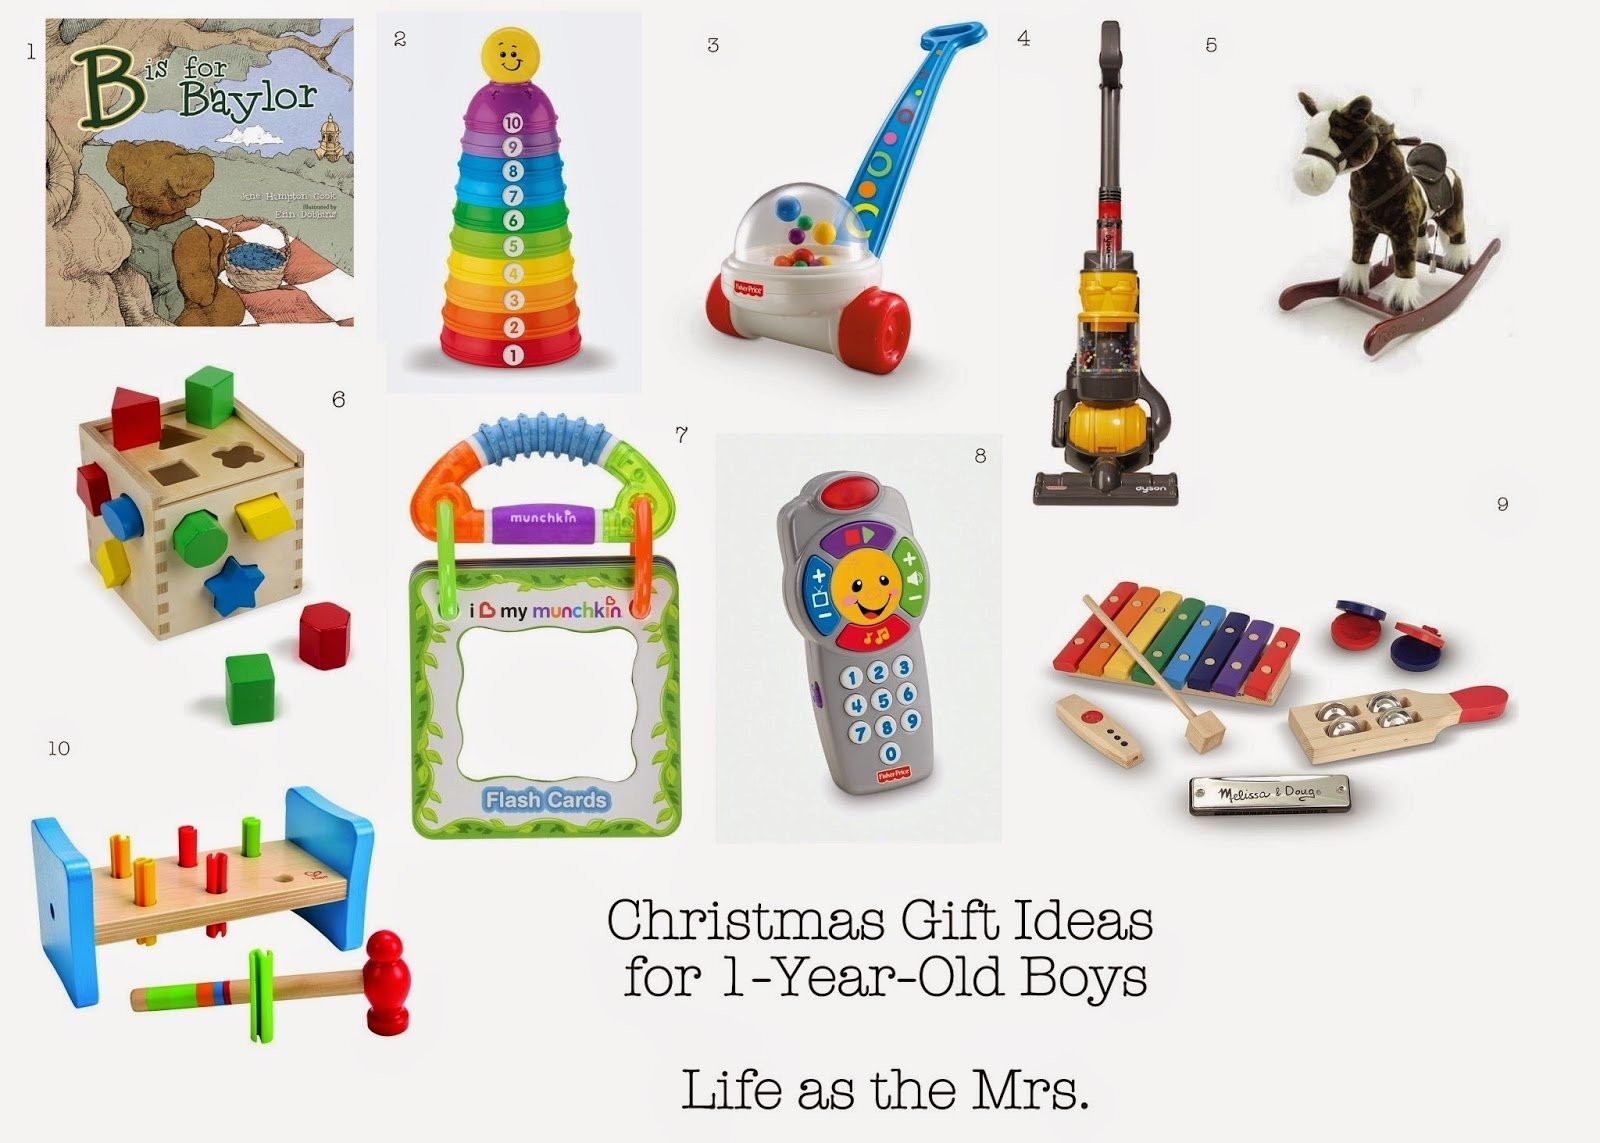 10 Best Gift Ideas For A One Year Old life as the mrs christmas gift ideas for one year old boys 11 2020